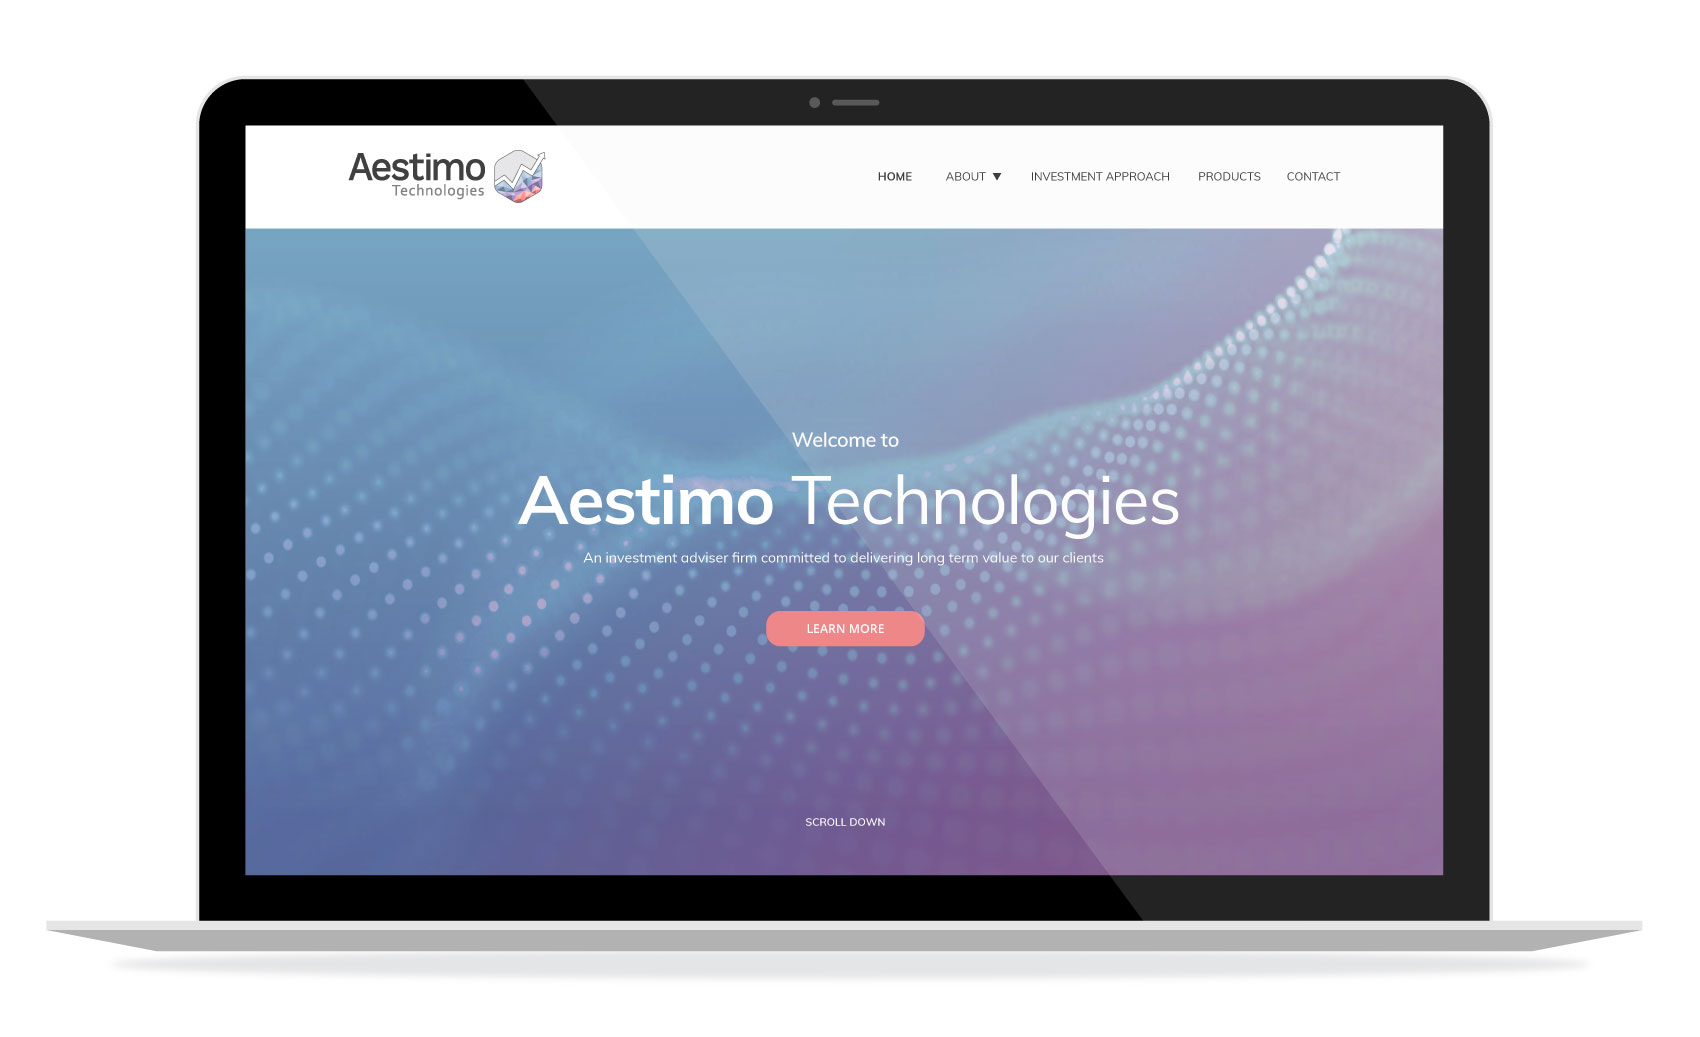 aestimo home page